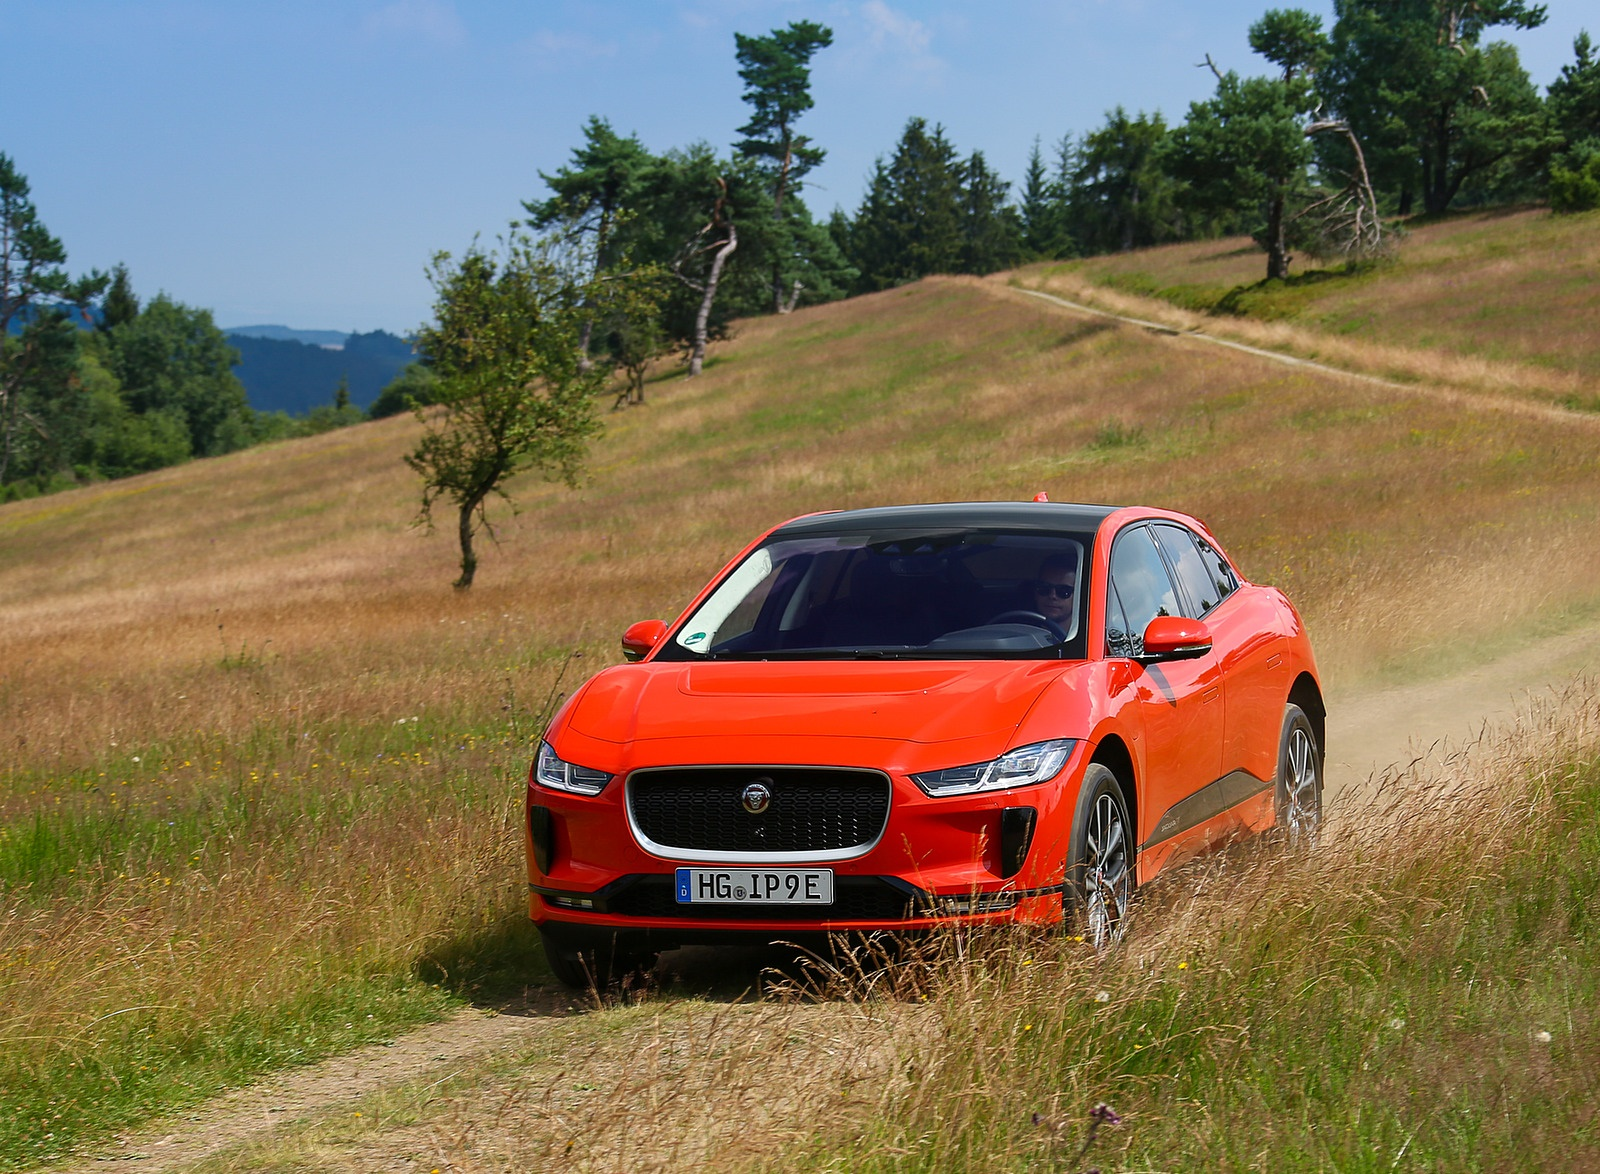 2019 Jaguar I-PACE EV400 AWD HSE First Edition (Color: Photon Red) Front Wallpapers #37 of 192